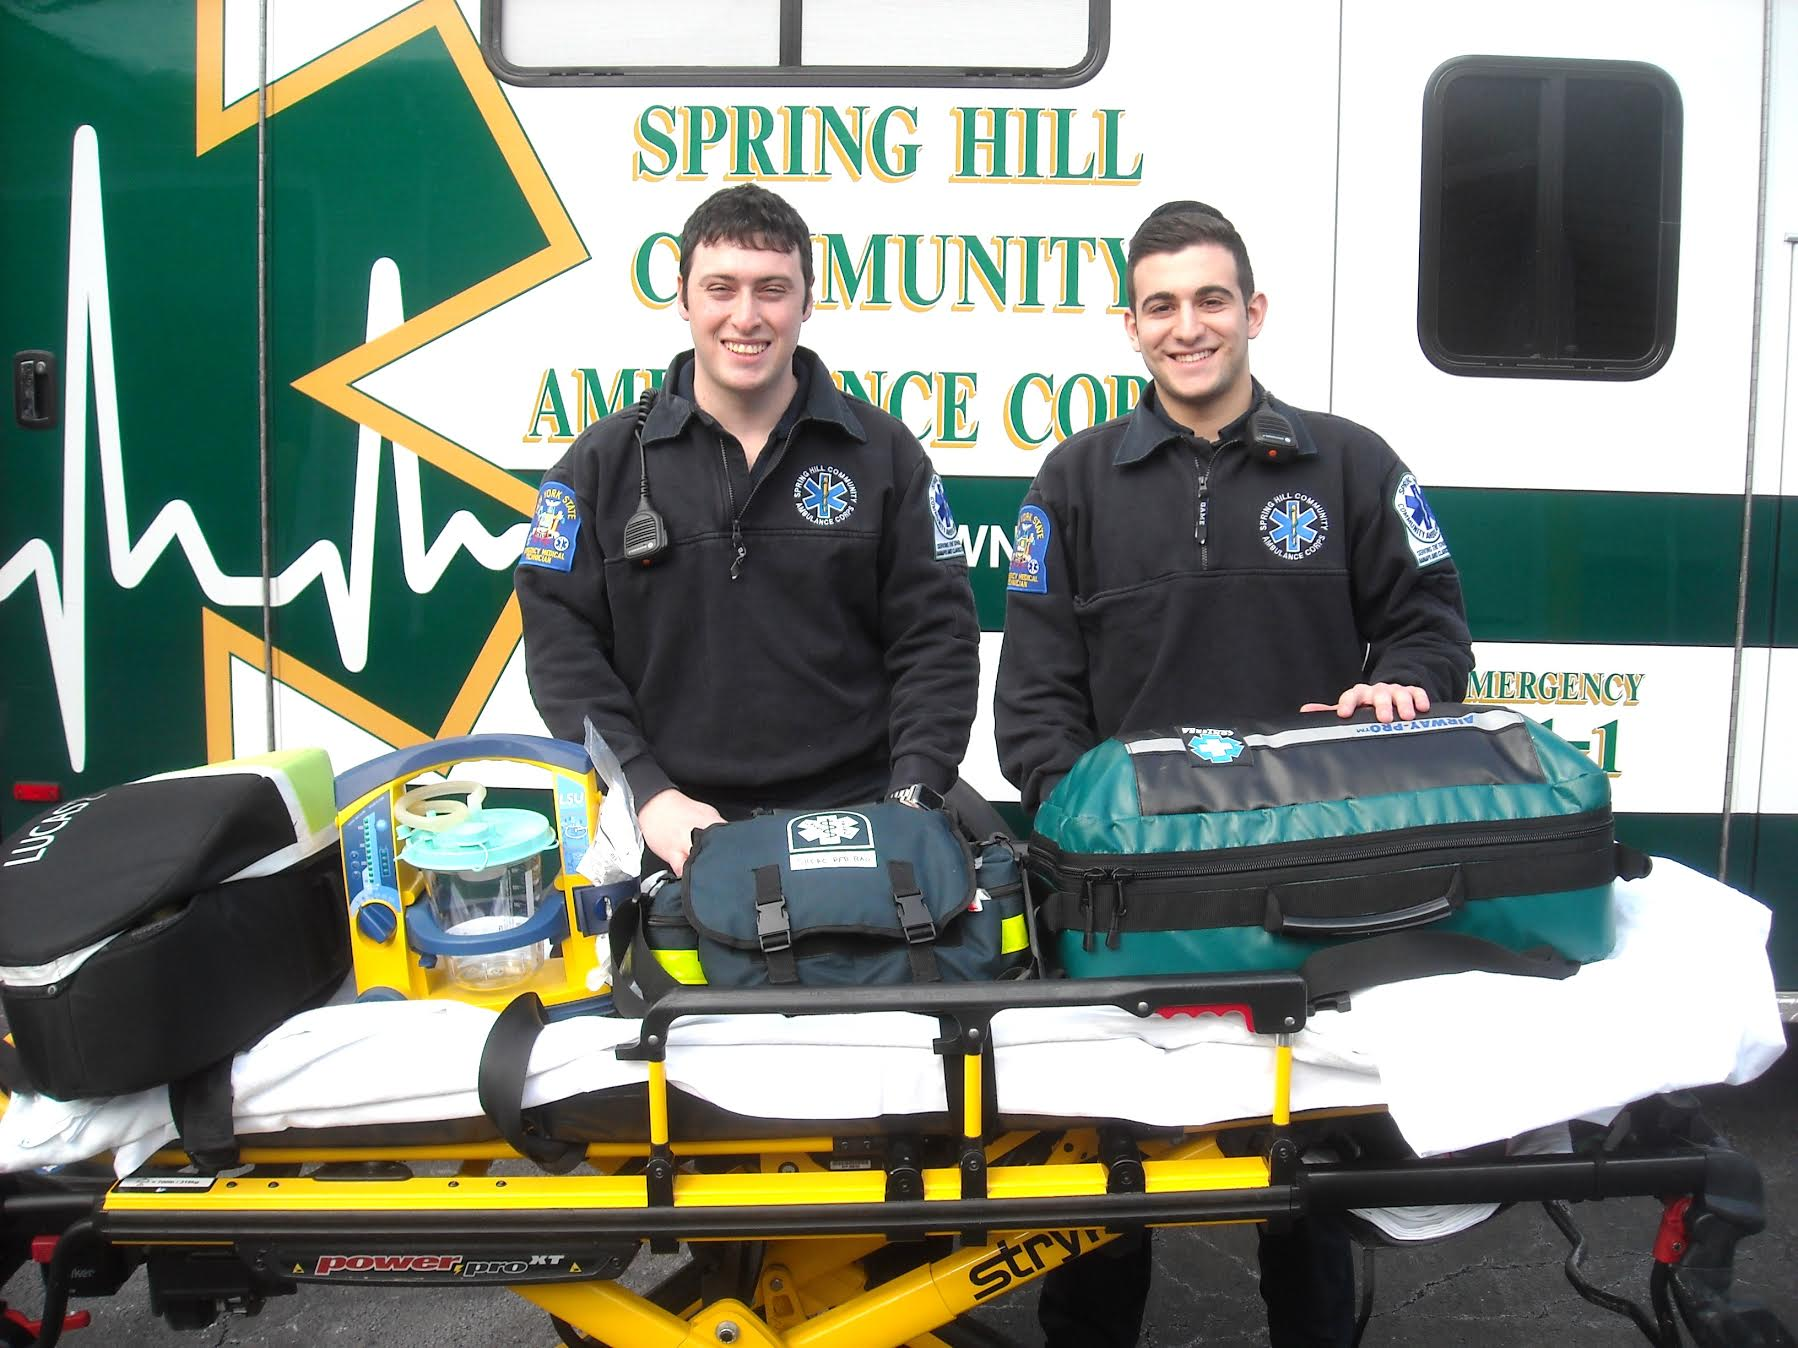 Unsung Heroes: EMT Yisroel Ziegler & EMT Arin Shatkin, Volunteers for the Spring Hill Community Ambulance Corps